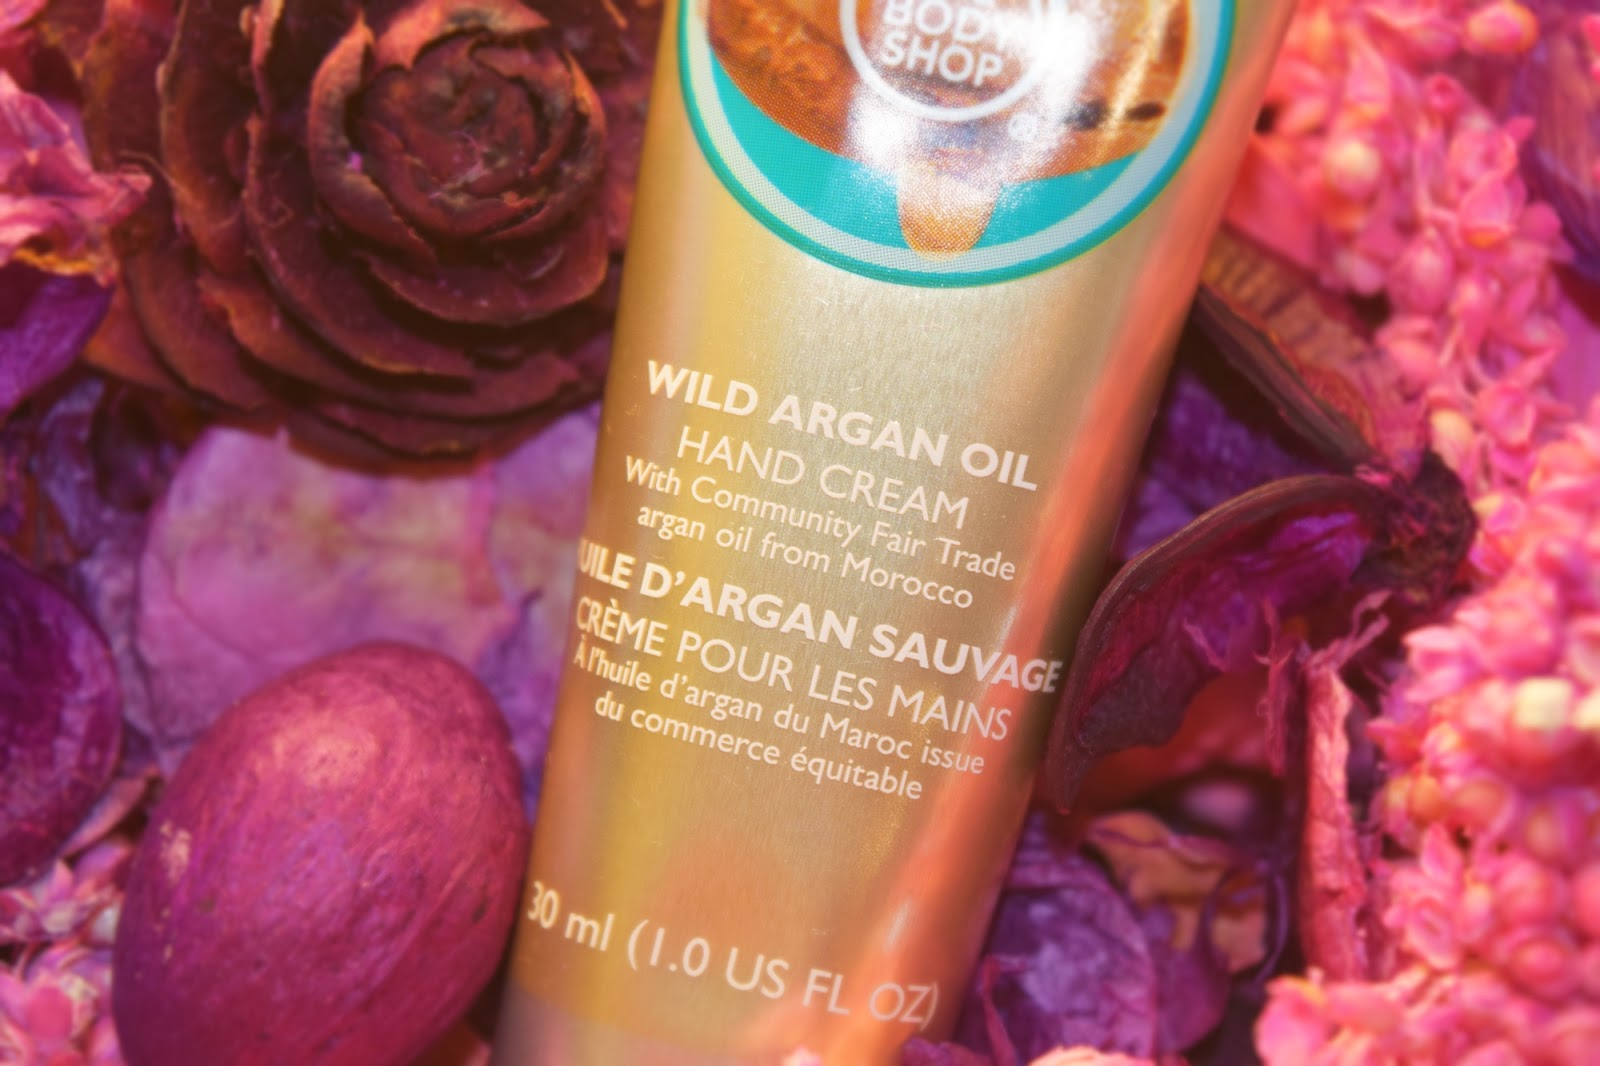 The Body Shop Wild Agran Oil Hand Cream